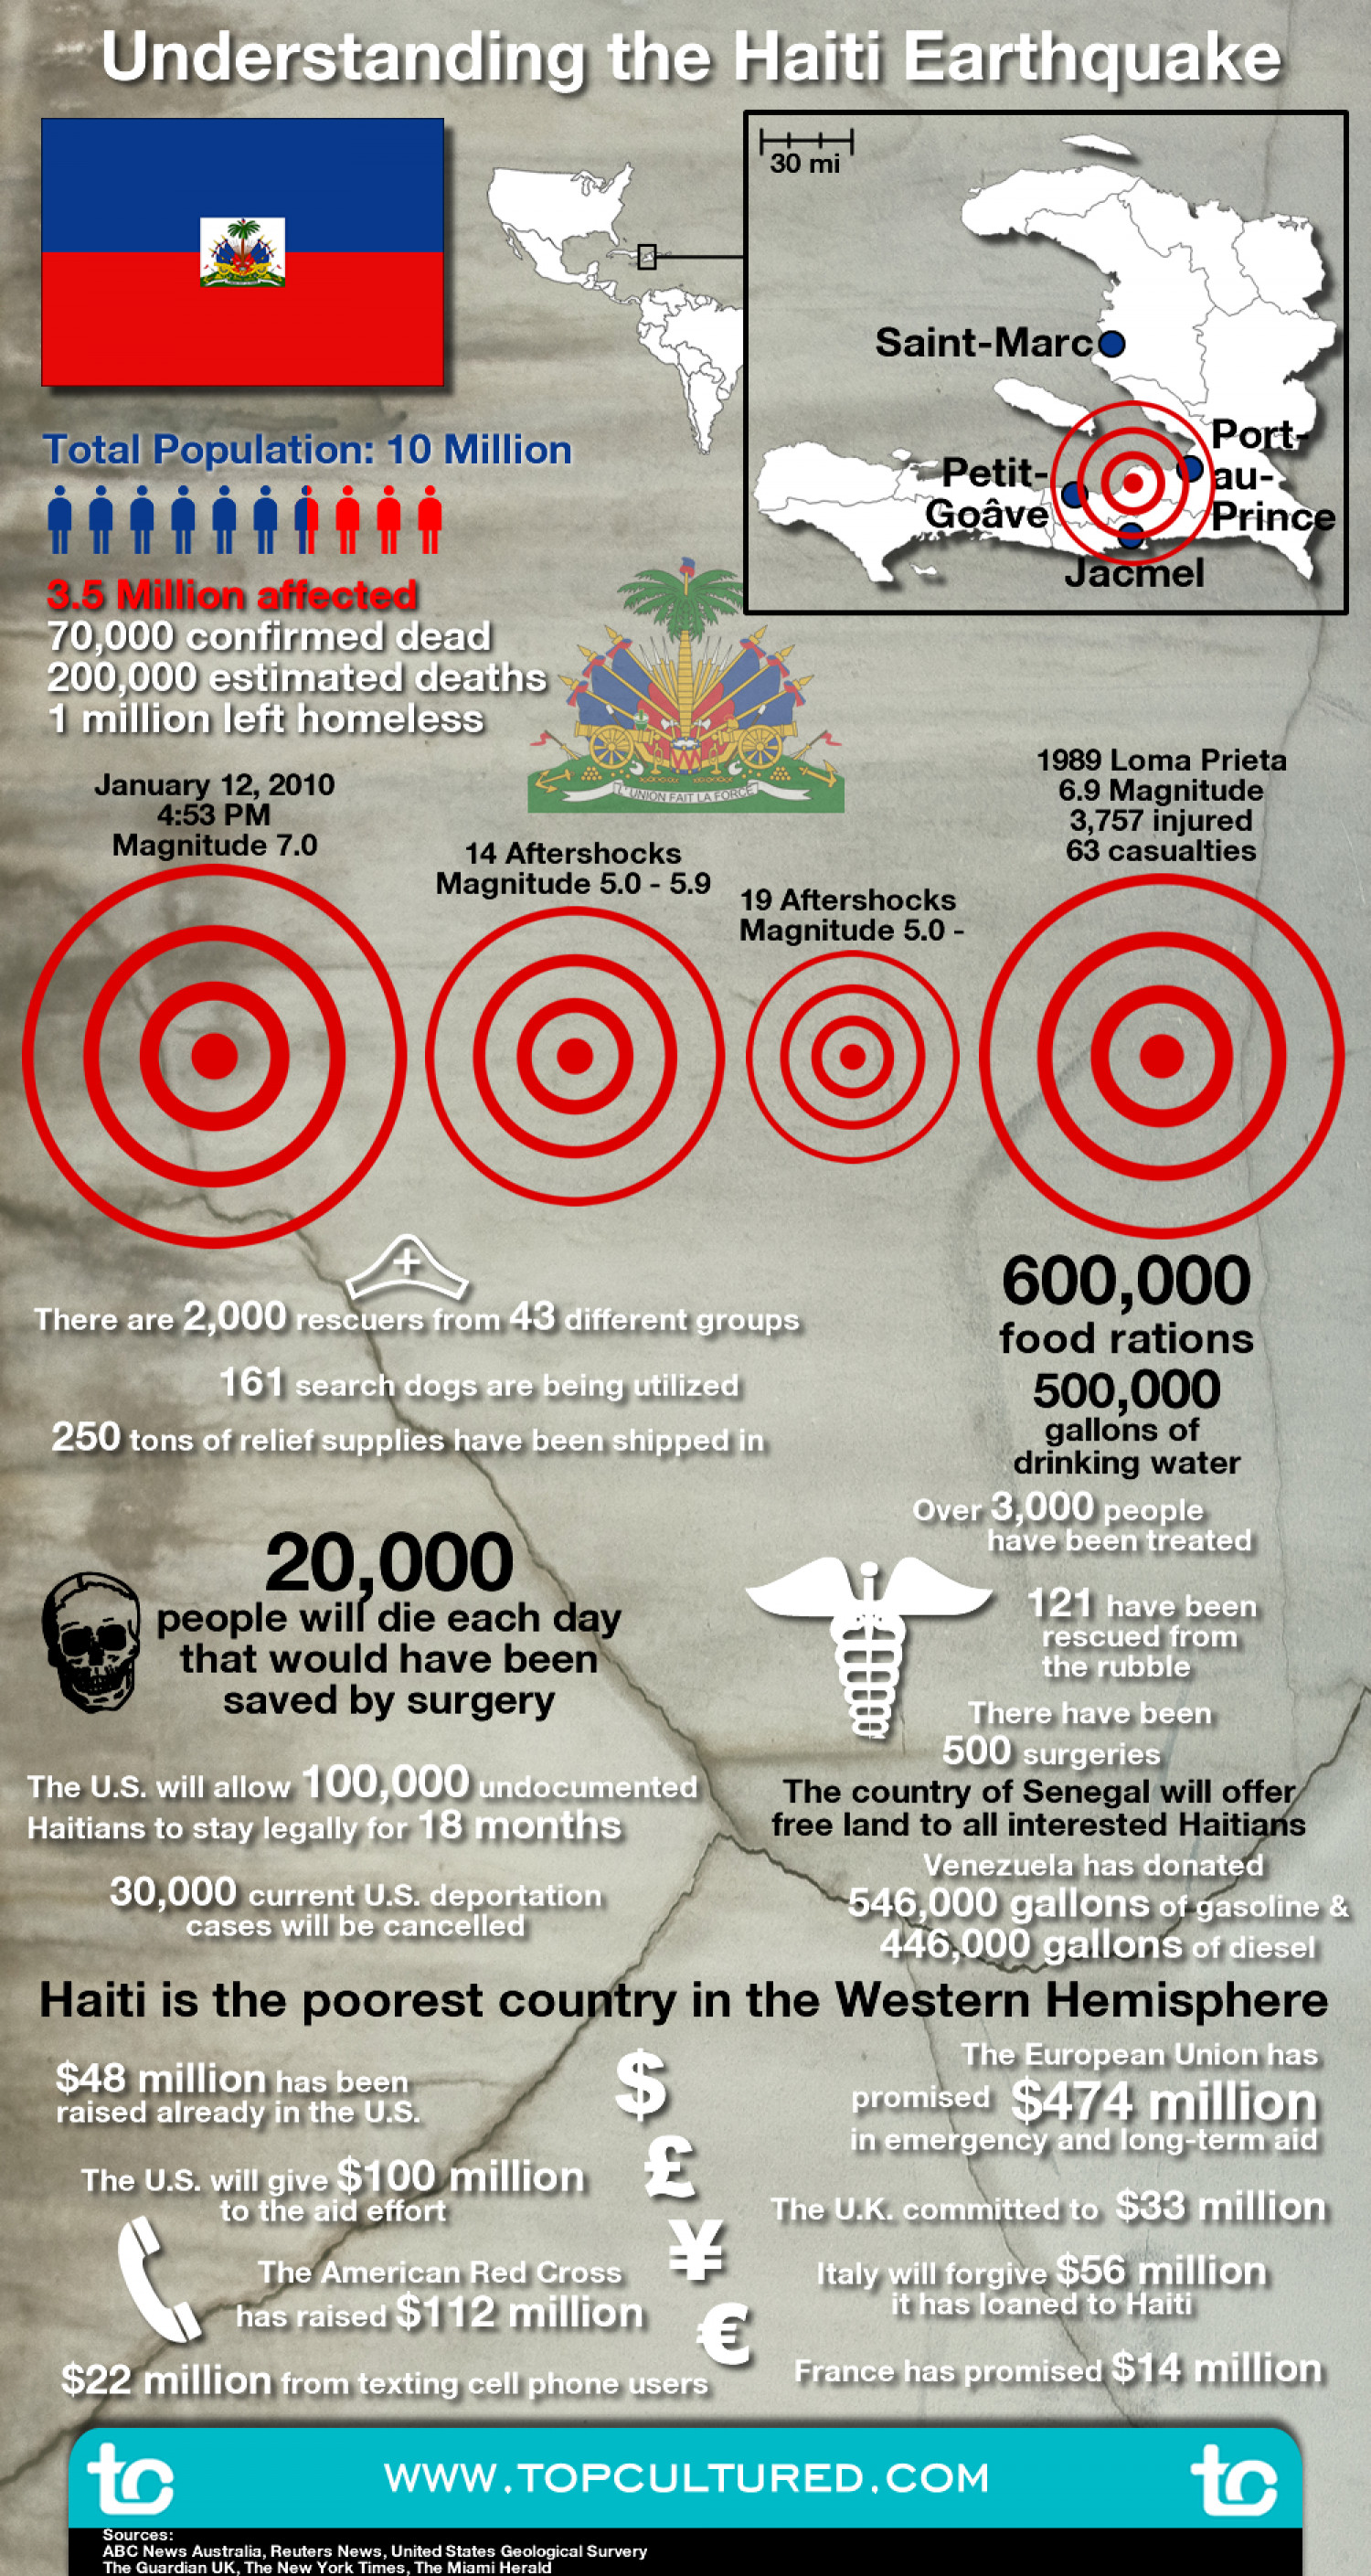 Understanding the Haiti Earthquake Infographic